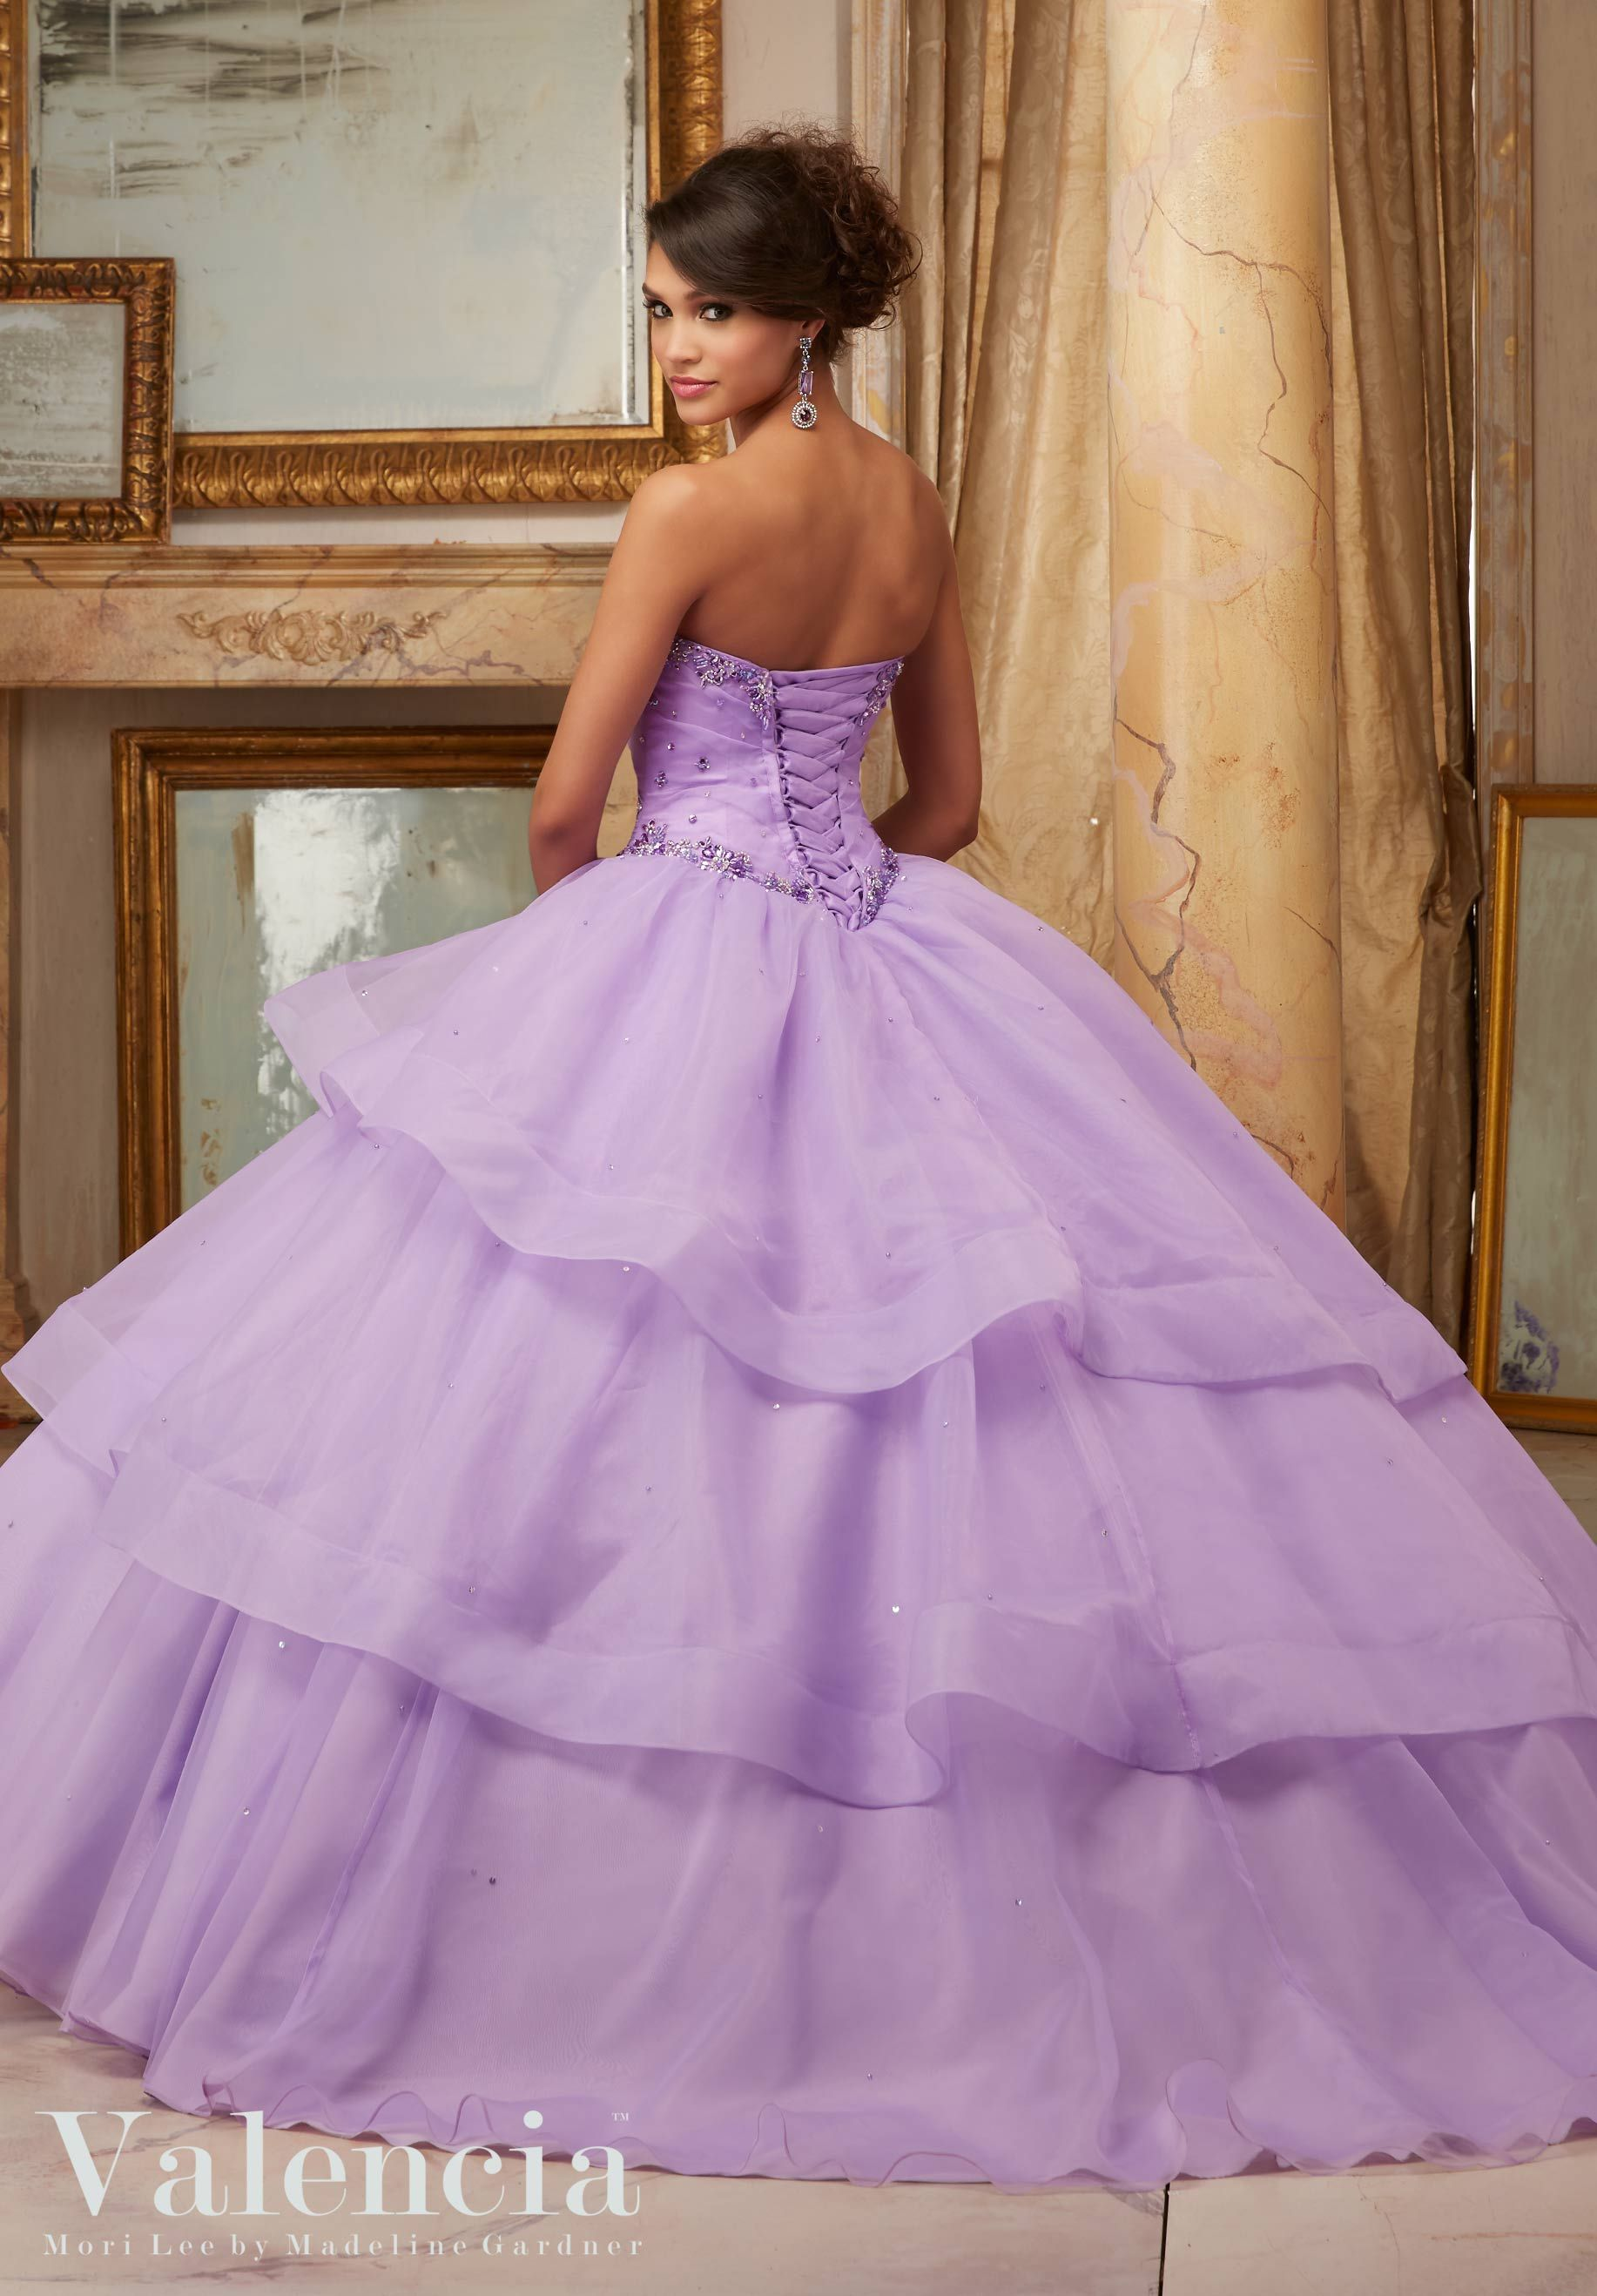 White and purple quinceanera dresses exclusive photo